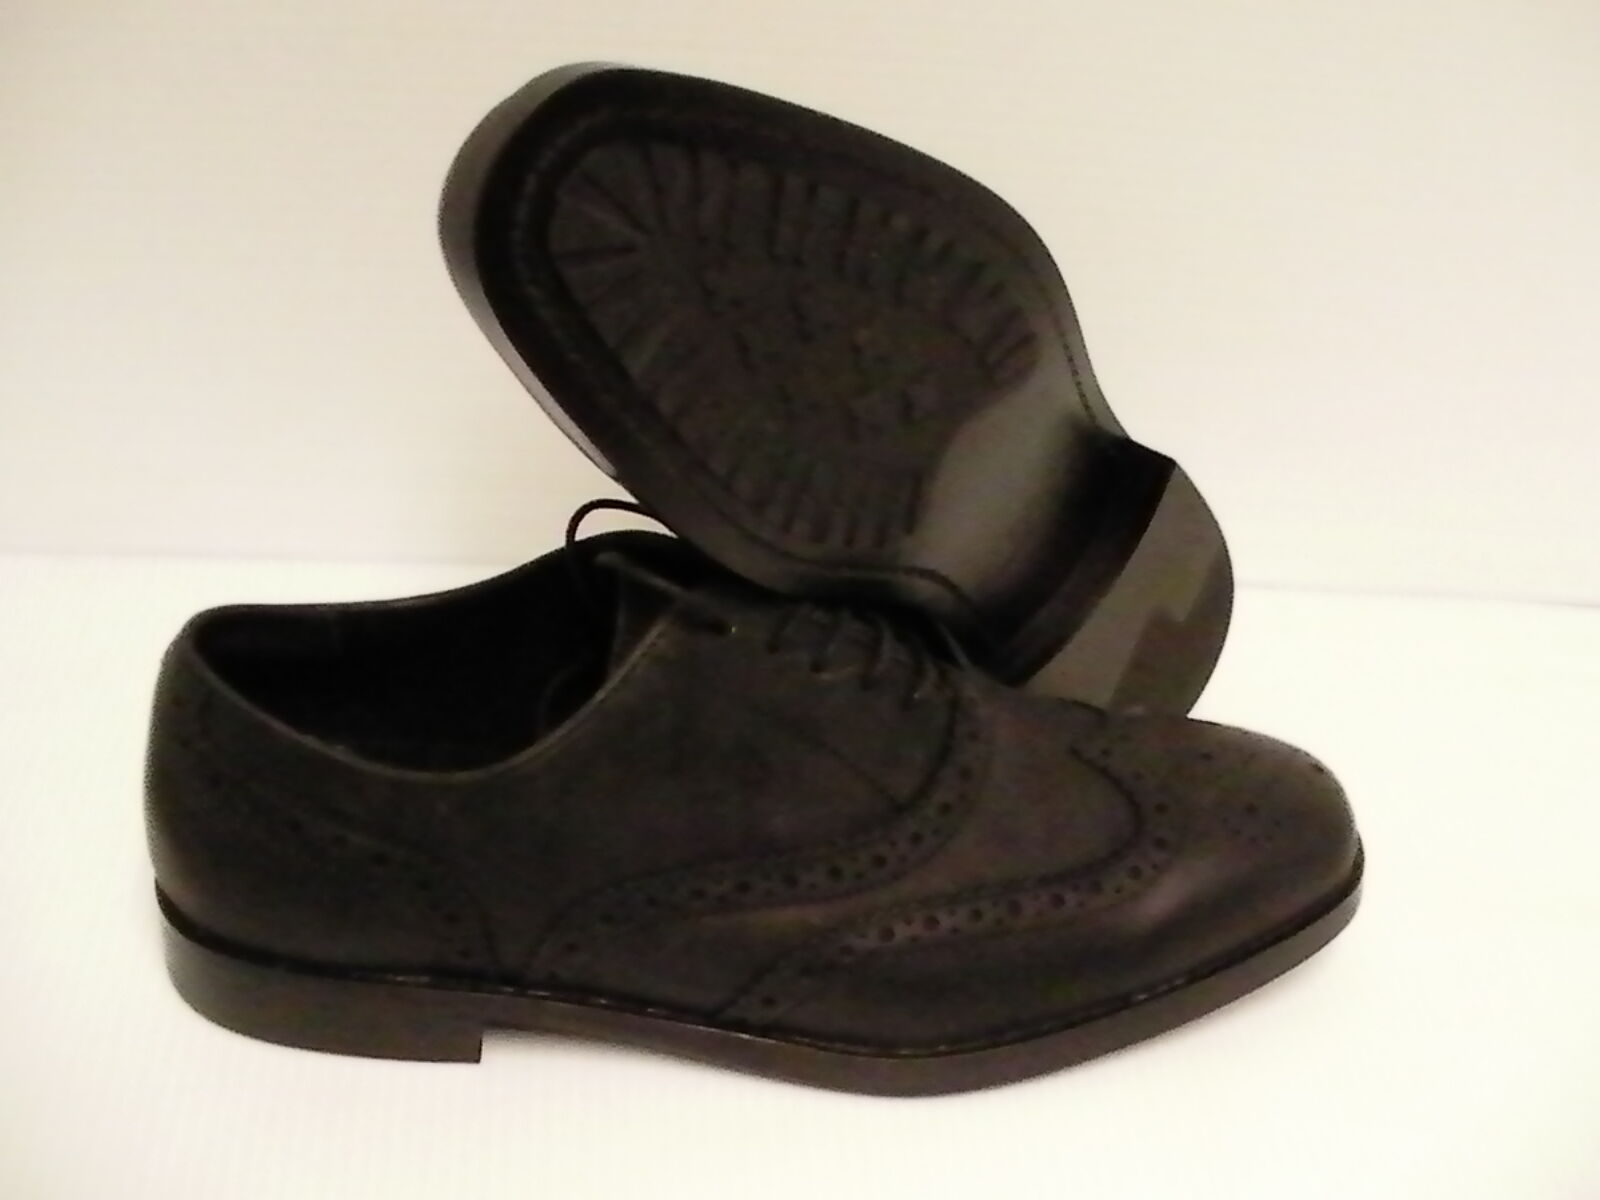 Polo Ralph Lauren Damoin casual dressing leather shoes blacks size 9 D